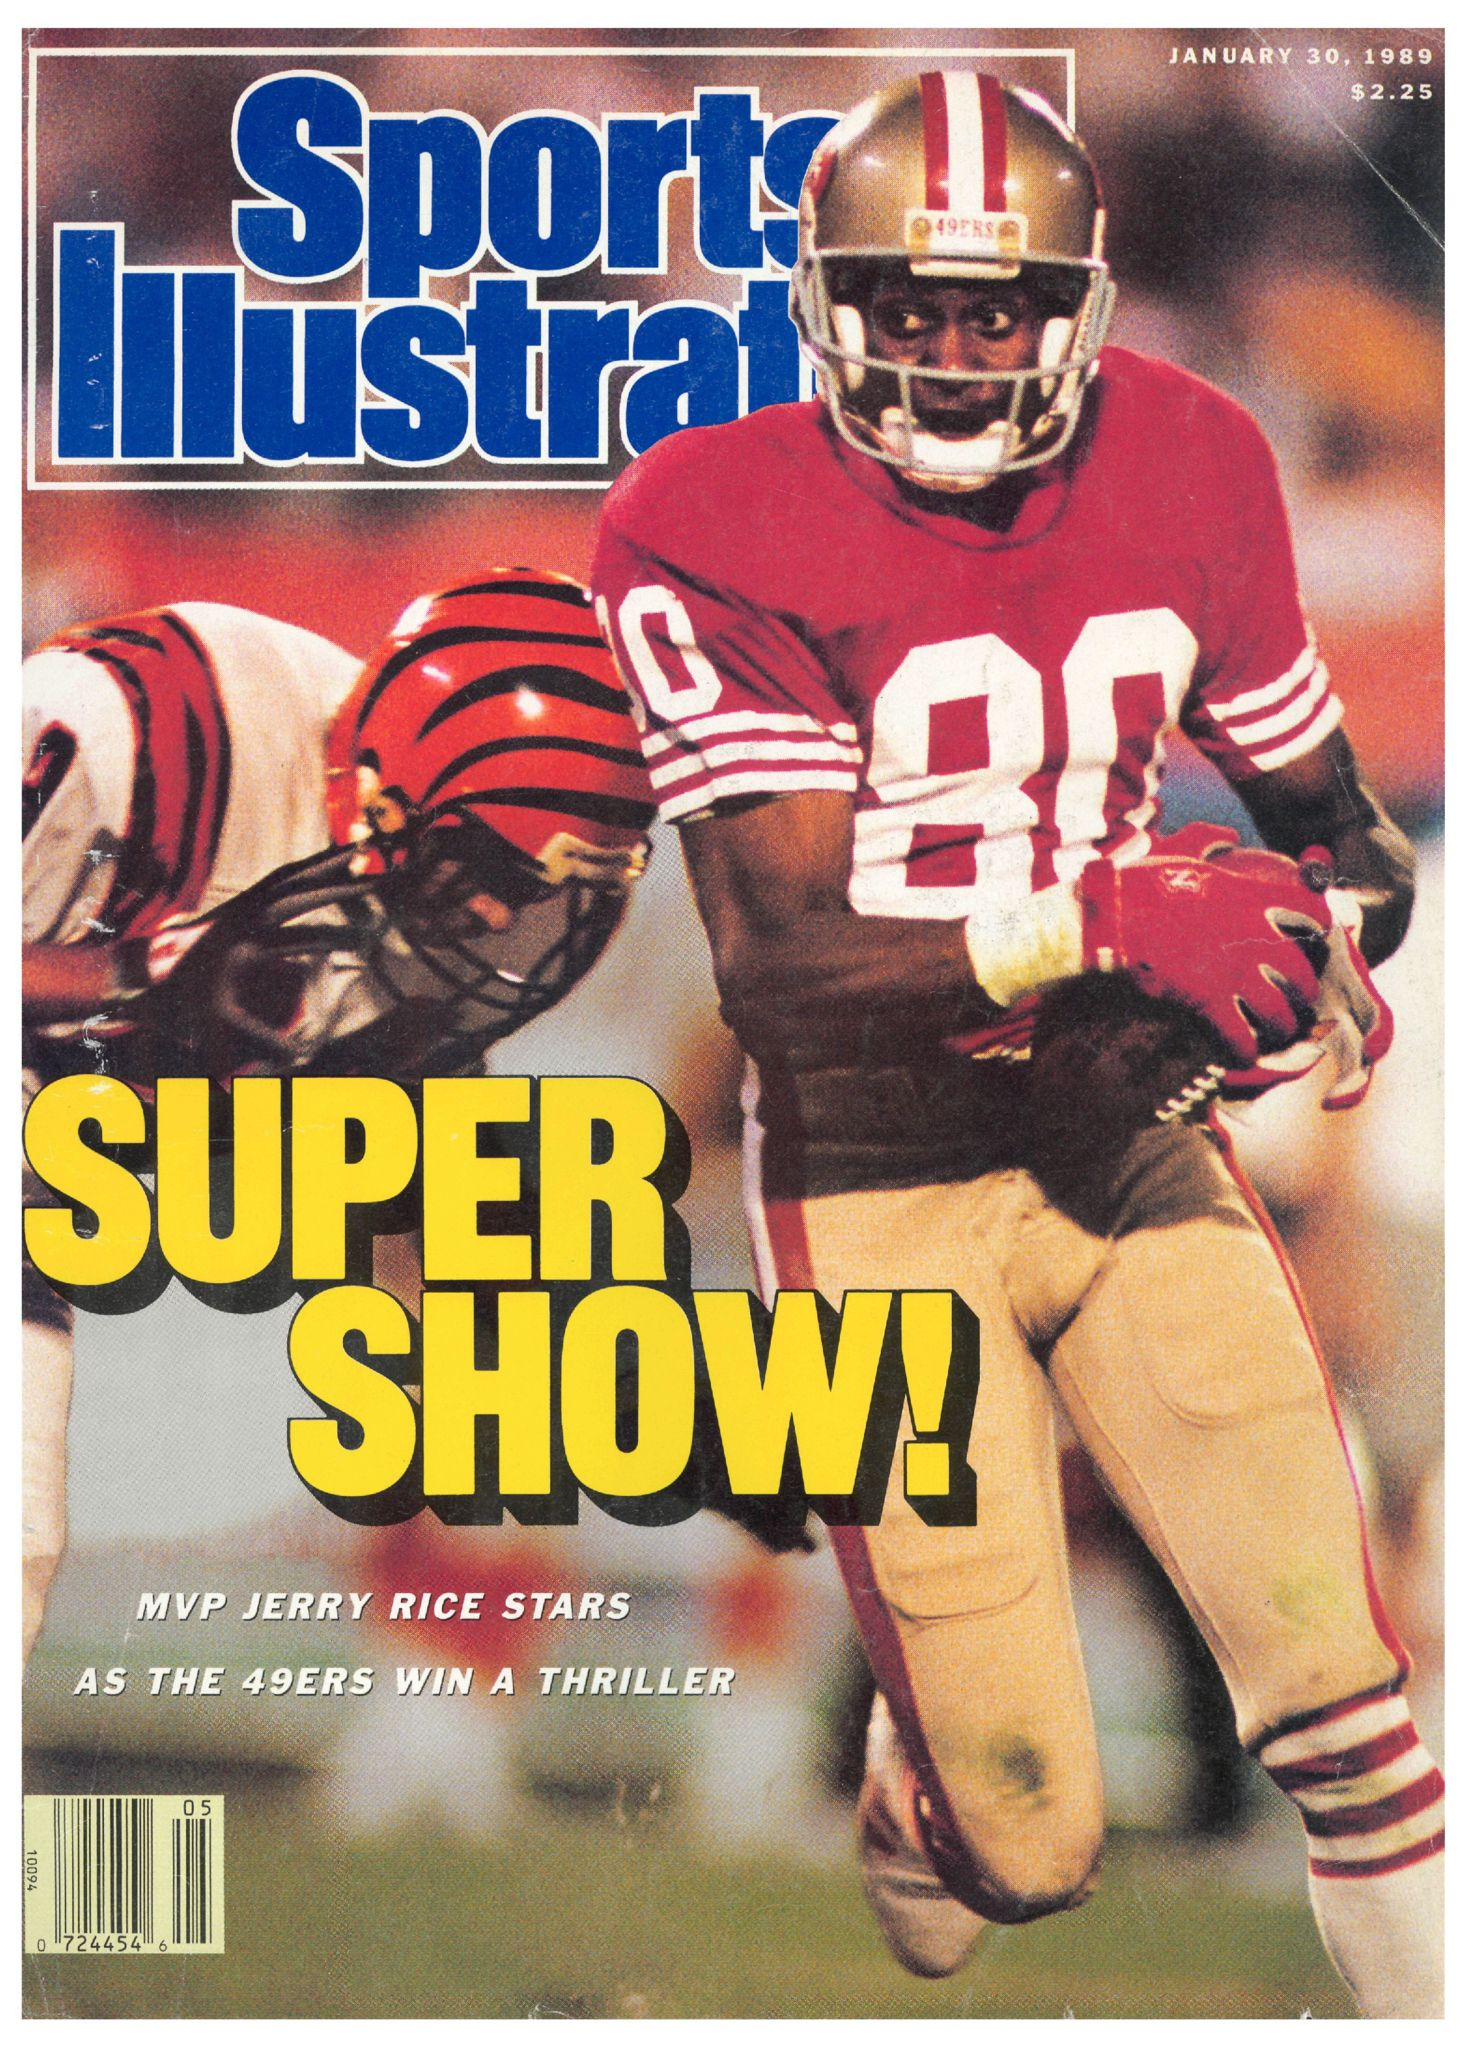 January 30, 1989 Issue Viewer (With images) Sports